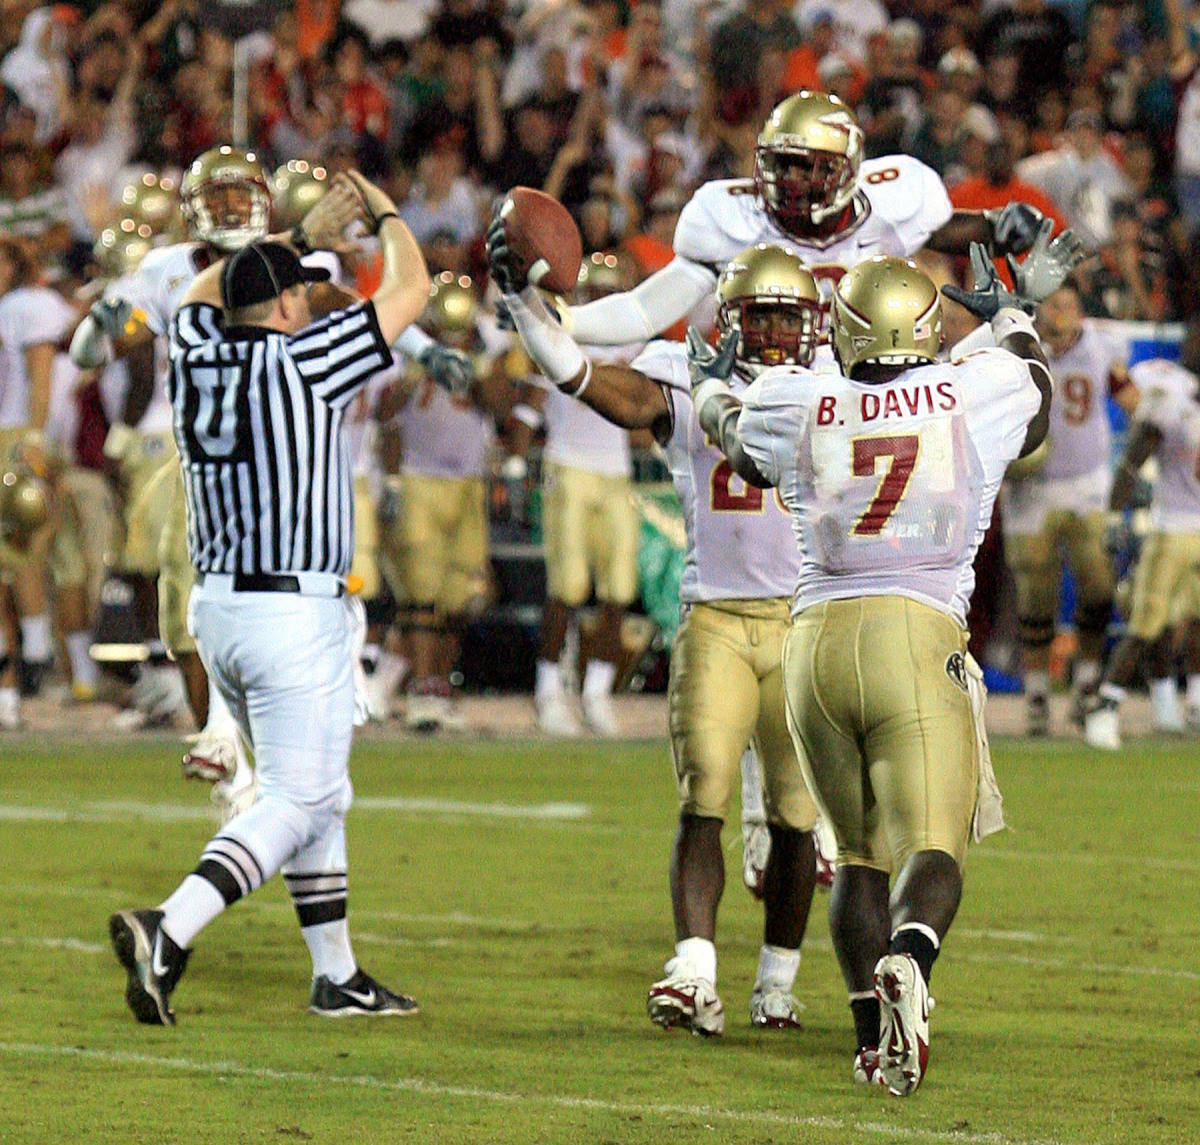 Florida State defensive back Michael Ray Garvin, center right, celebrates with linebacker Buster Davis (7) and safety Roger Williams after Garvin intercepted Miami quarterback Kyle Wright's final pass with 29 seconds left in the fourth quarter of footballMonday, Sept. 4, 2006 at the Orange Bowl in Miami. Florida State defeated Miami 13-10. (AP Photo/Luis M. Alvarez)